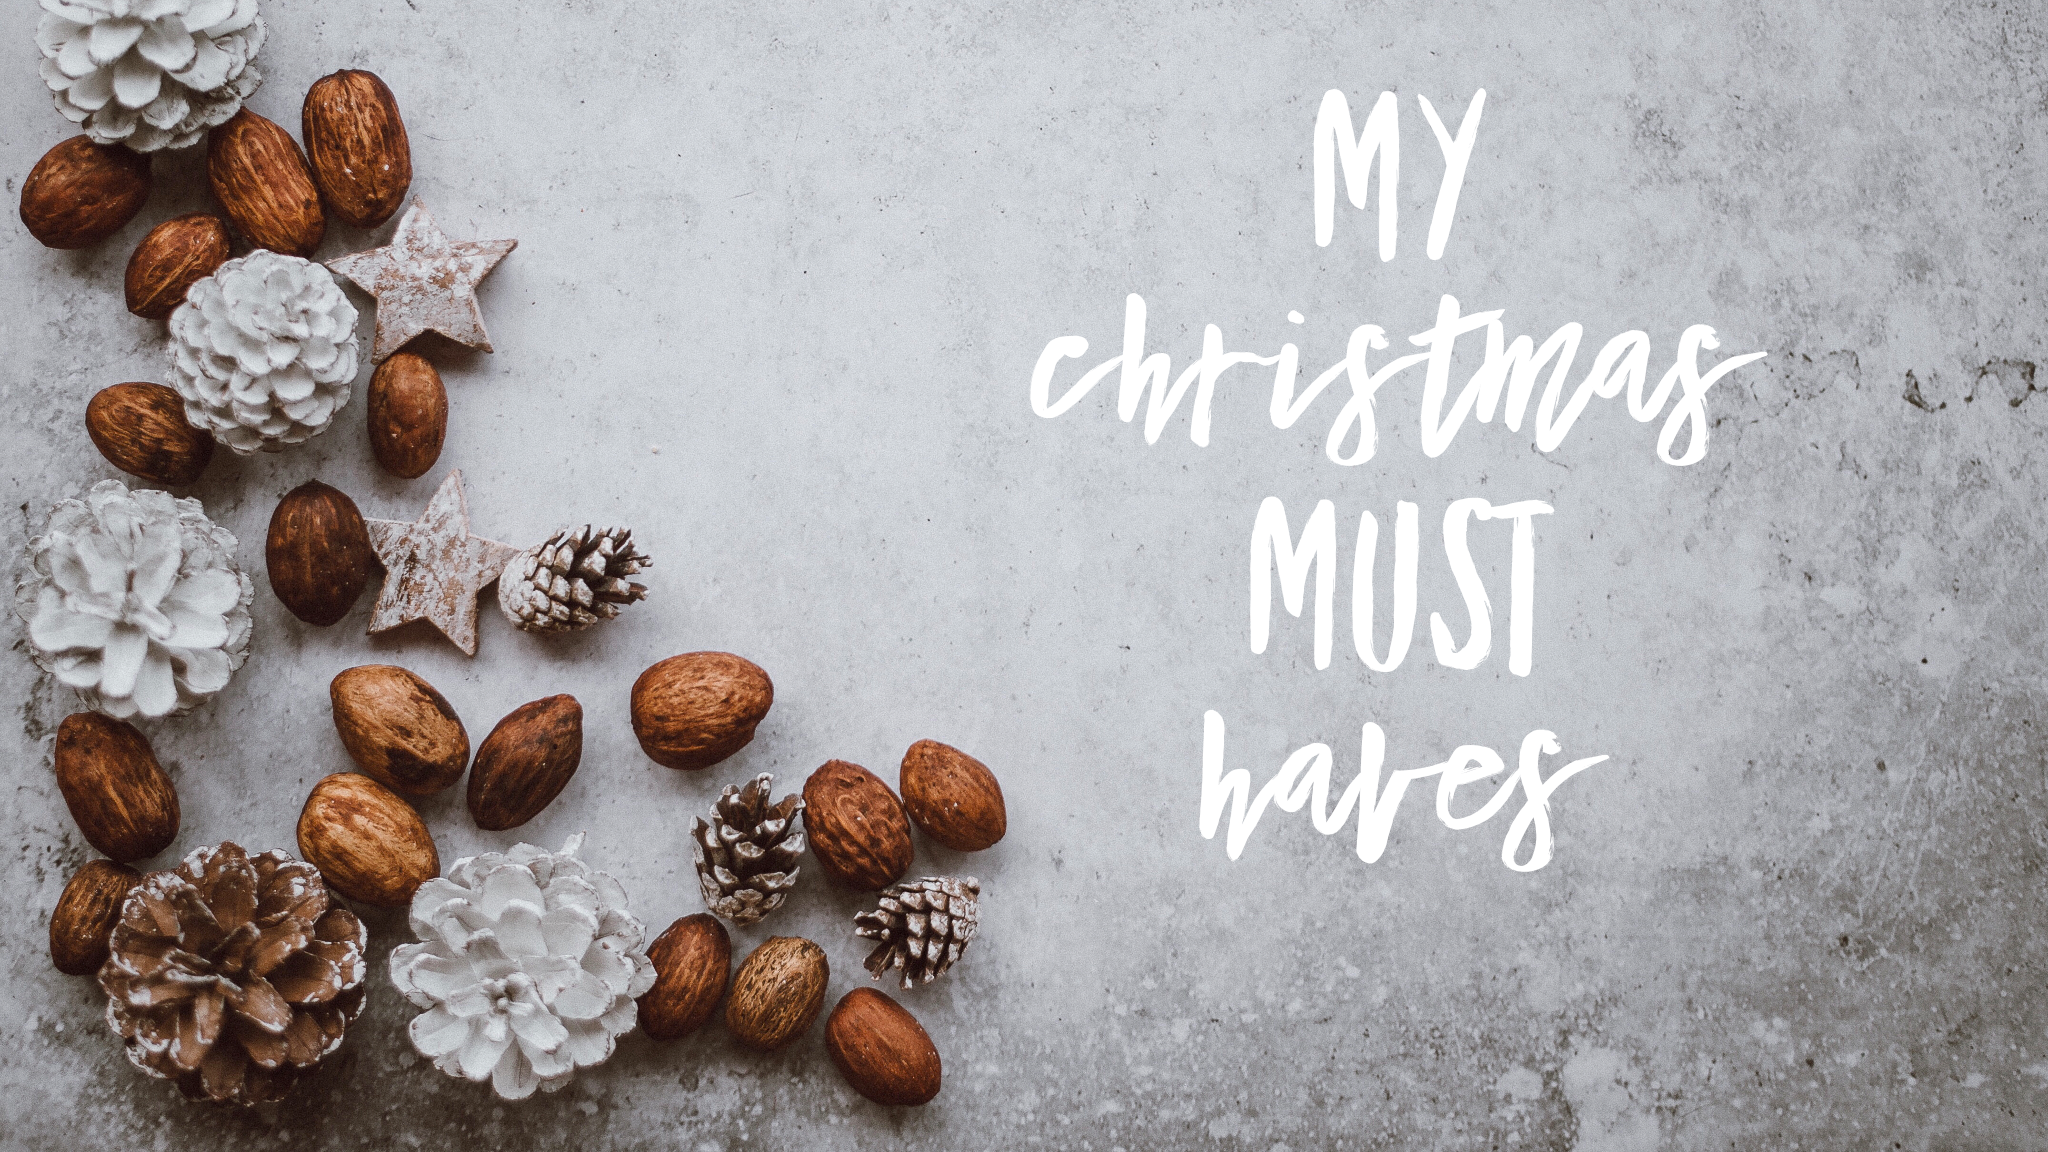 My Christmas Must Haves - How I Approach Christmas as a Minimalist